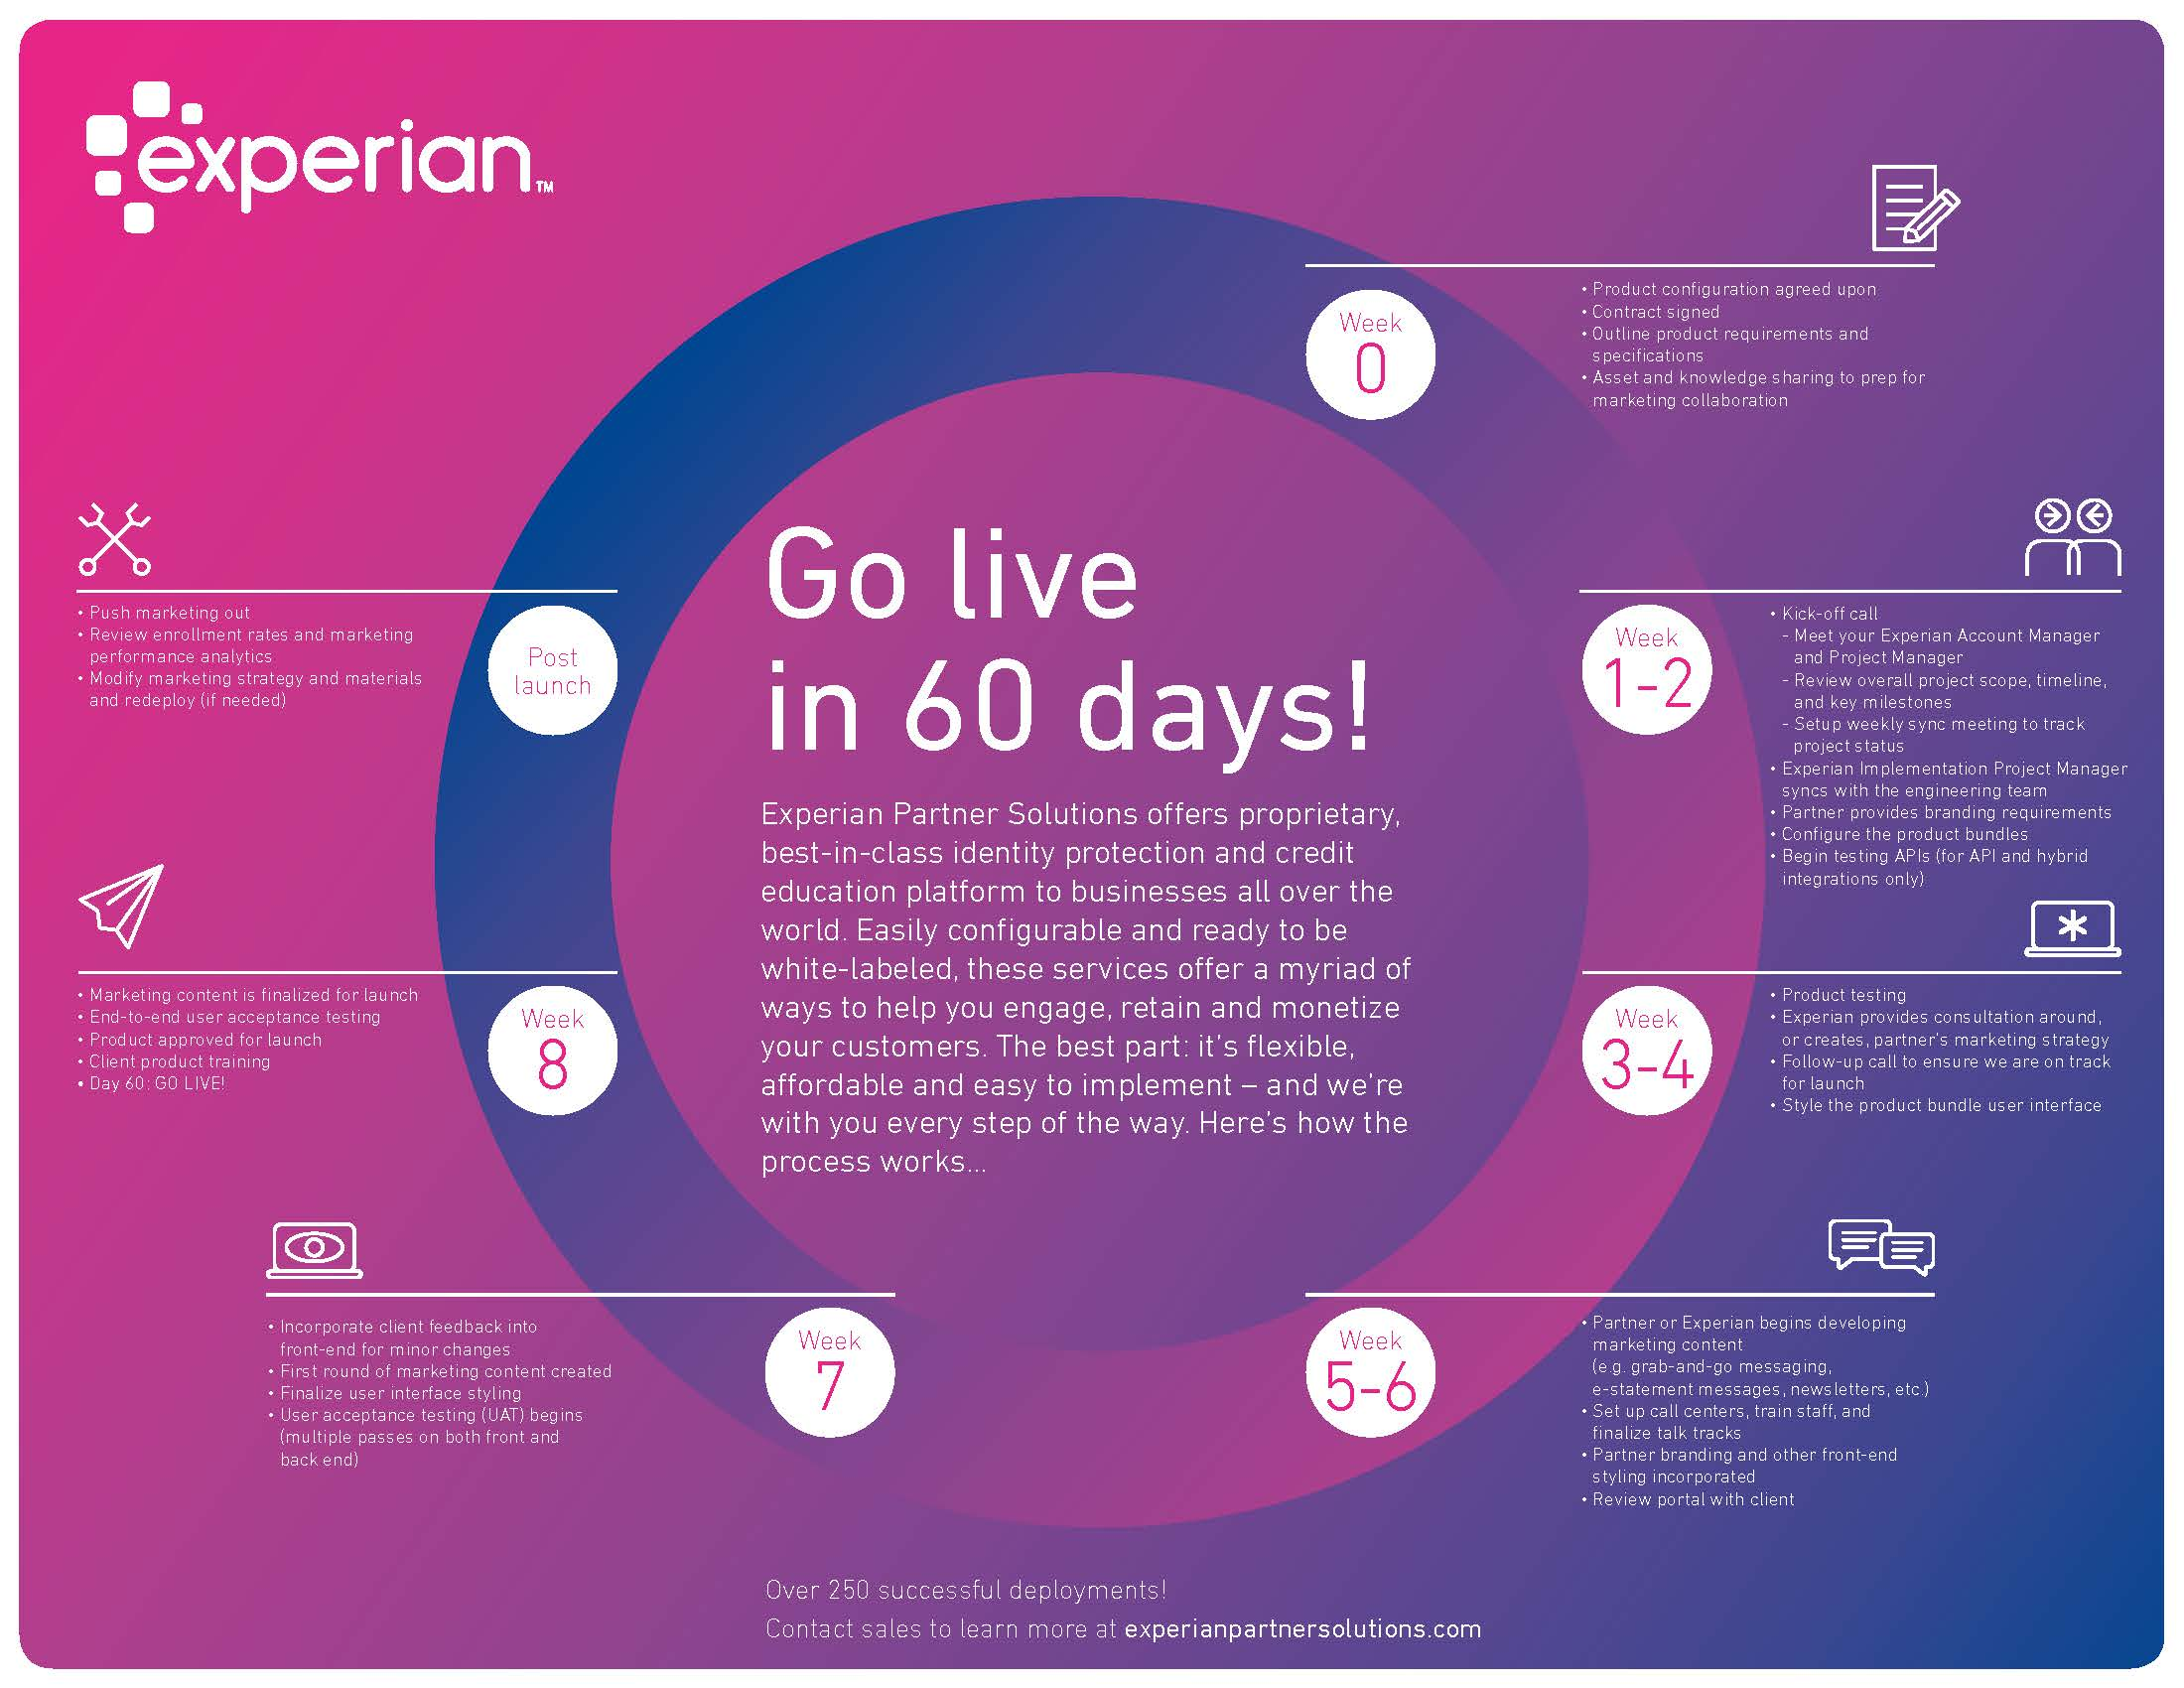 Experian Partner Solutions Graphic_LL_02